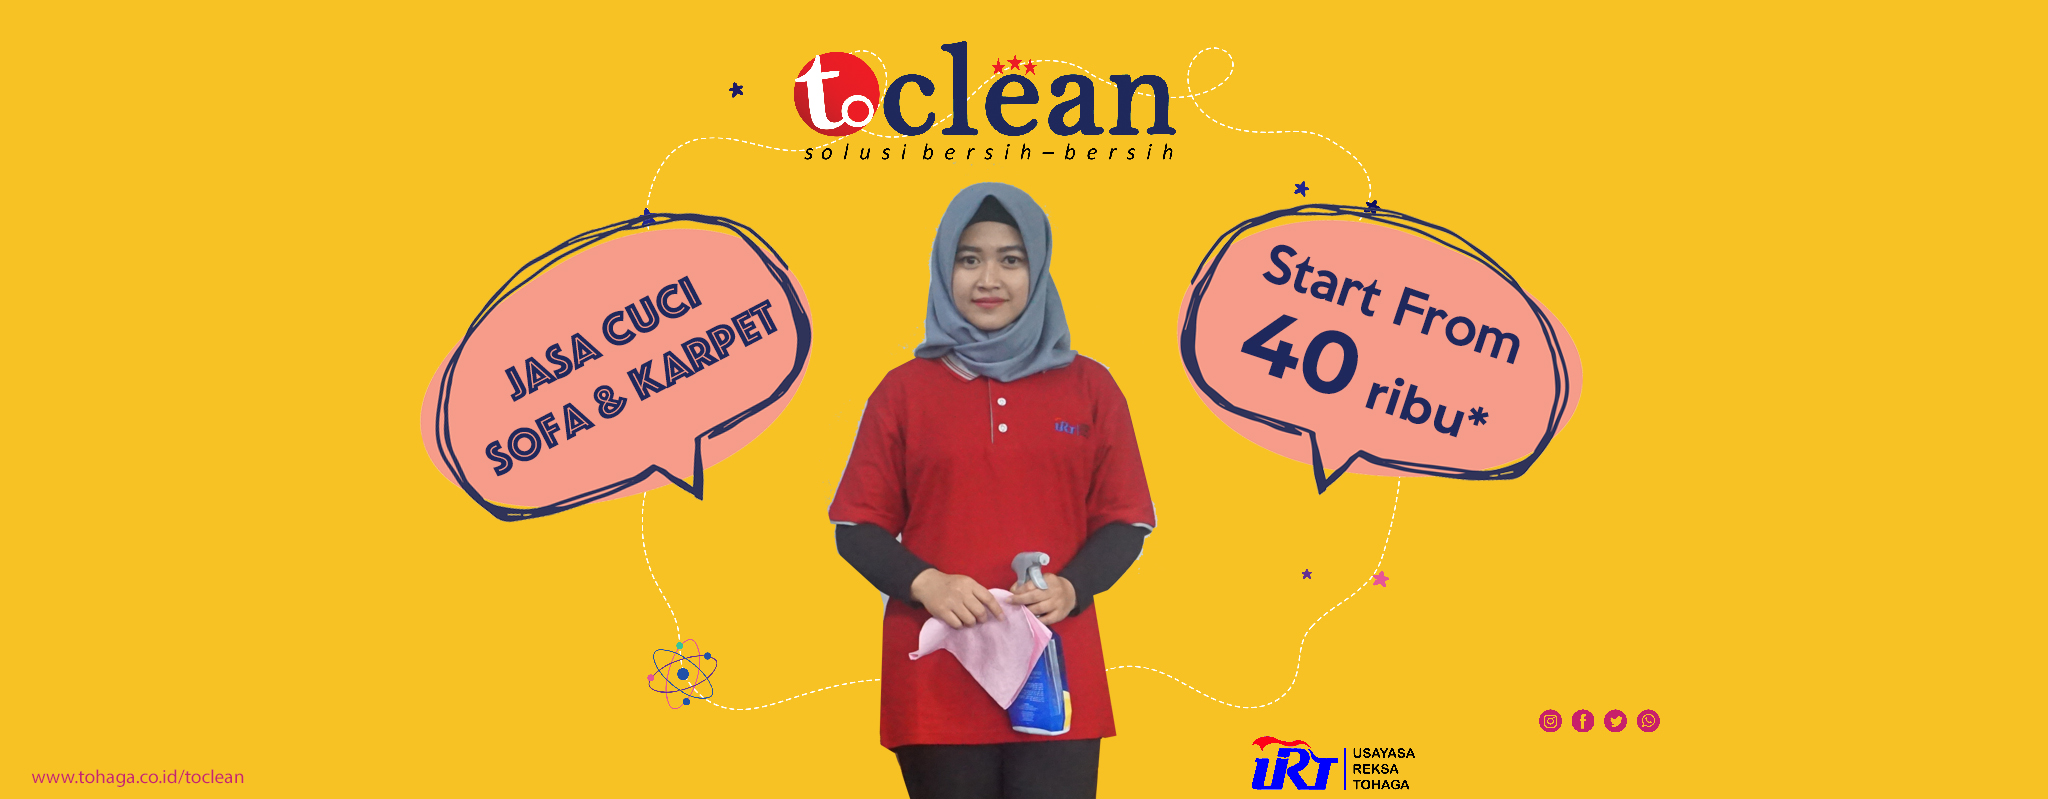 toclean2